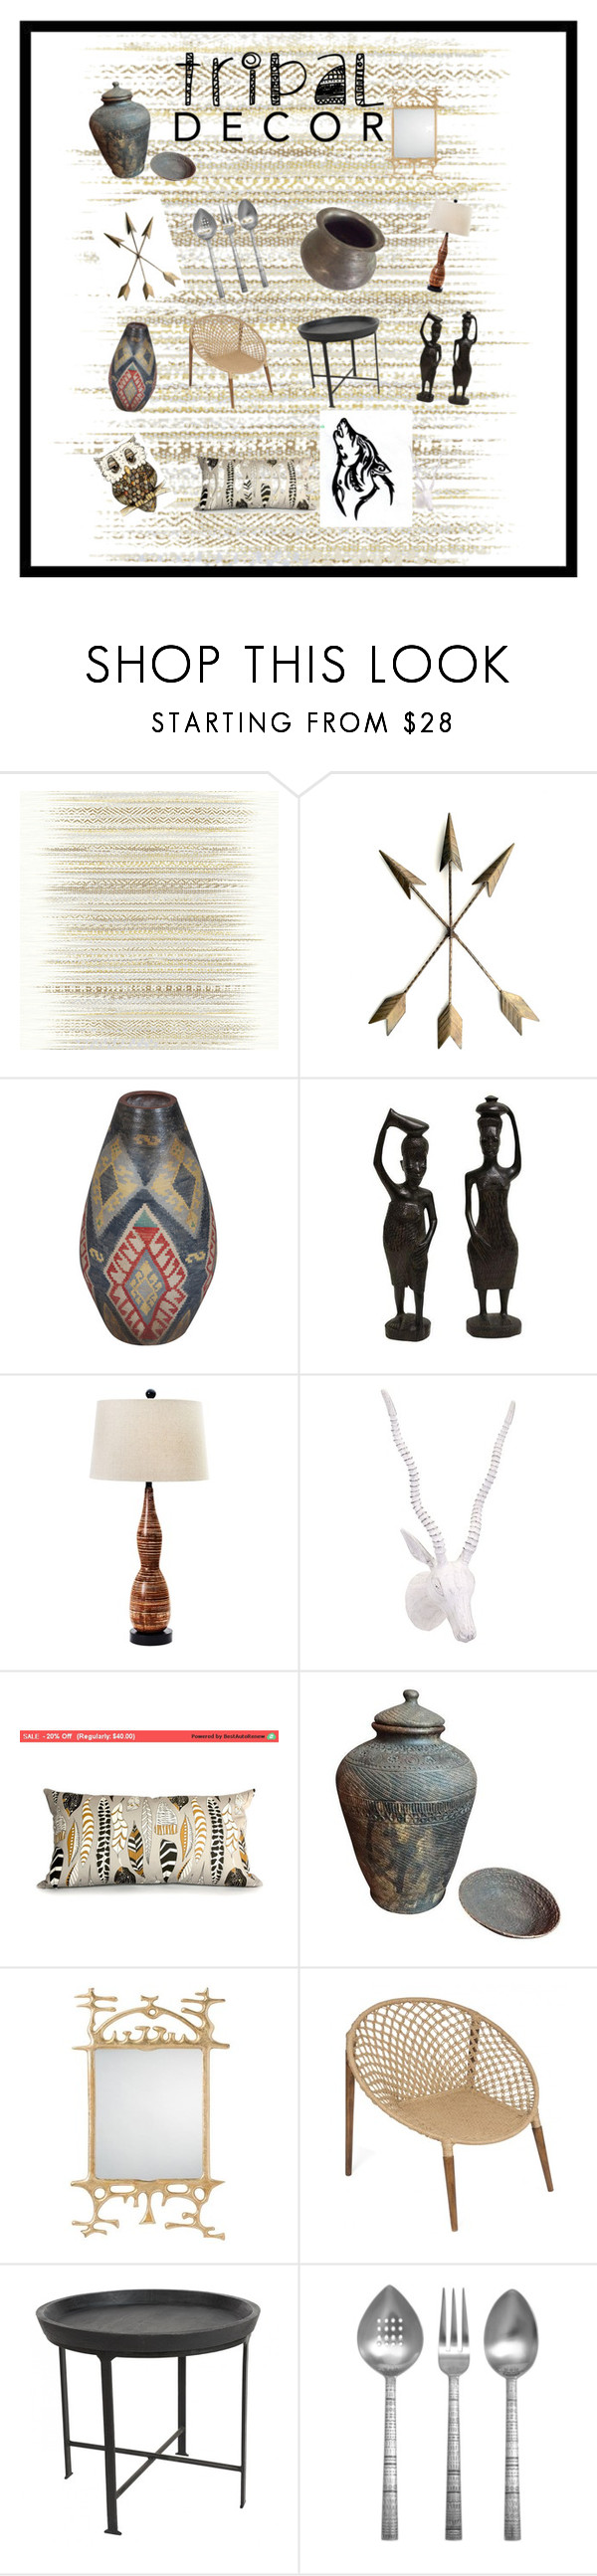 """Tribal decor"" by dogs109 ❤ liked on Polyvore featuring interior, interiors, interior design, home, home decor, interior decorating, Élitis, Universal Lighting and Decor, Arteriors and Lisa Jenks"